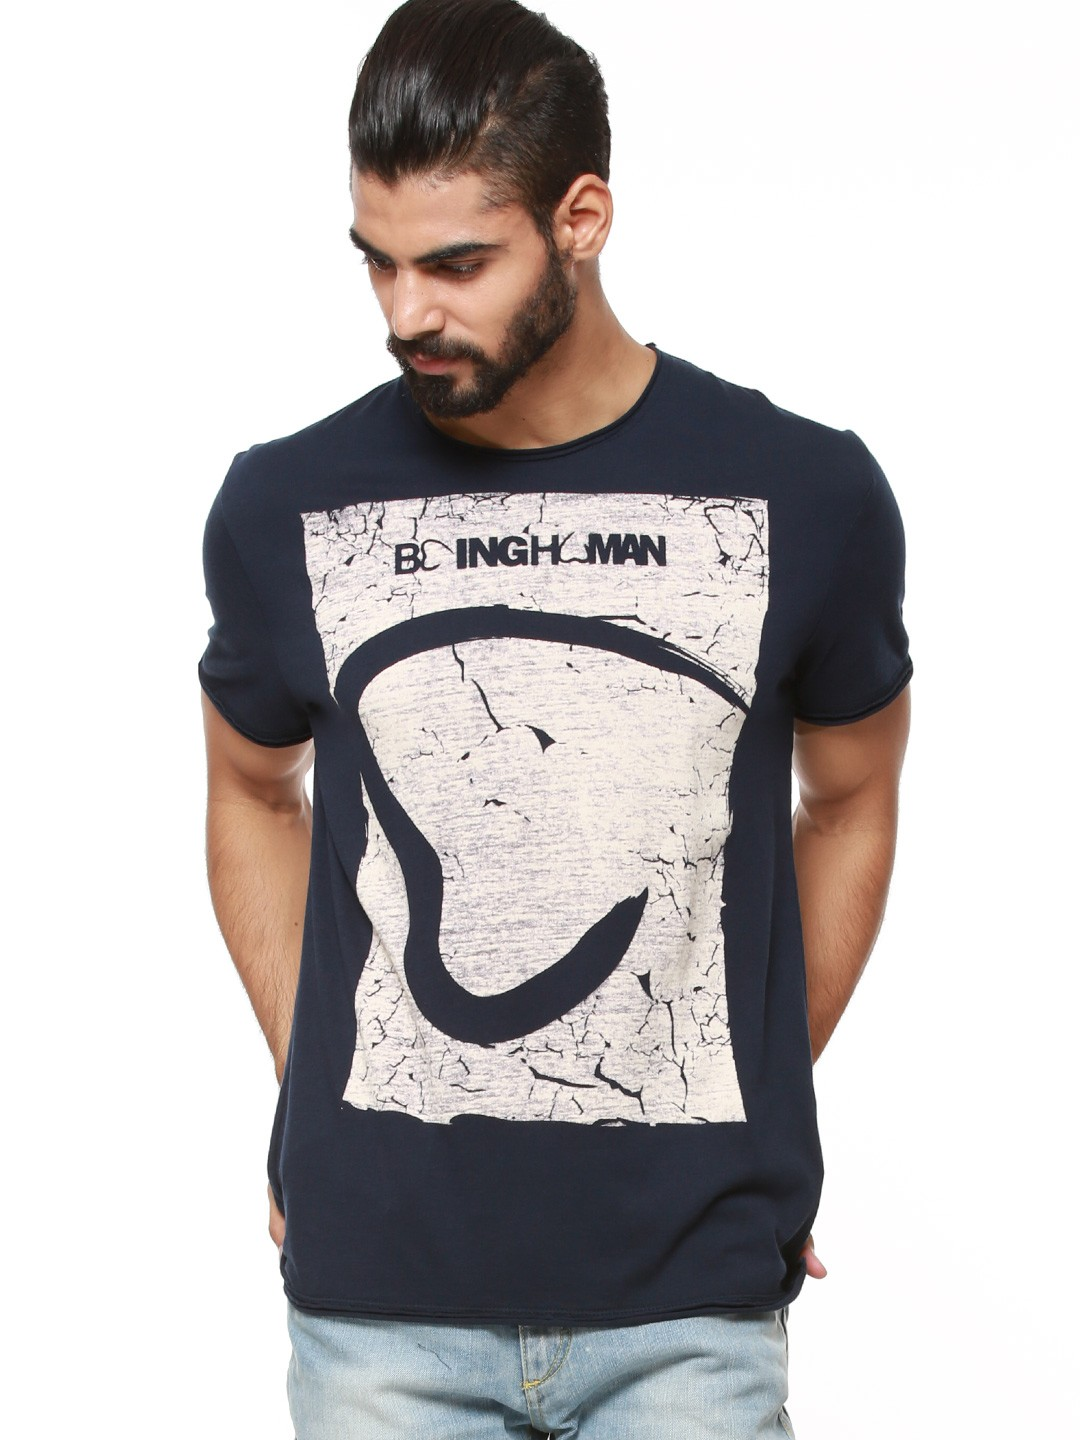 Buy being human logo t shirt with wash effect for men for Being human t shirts buy online india